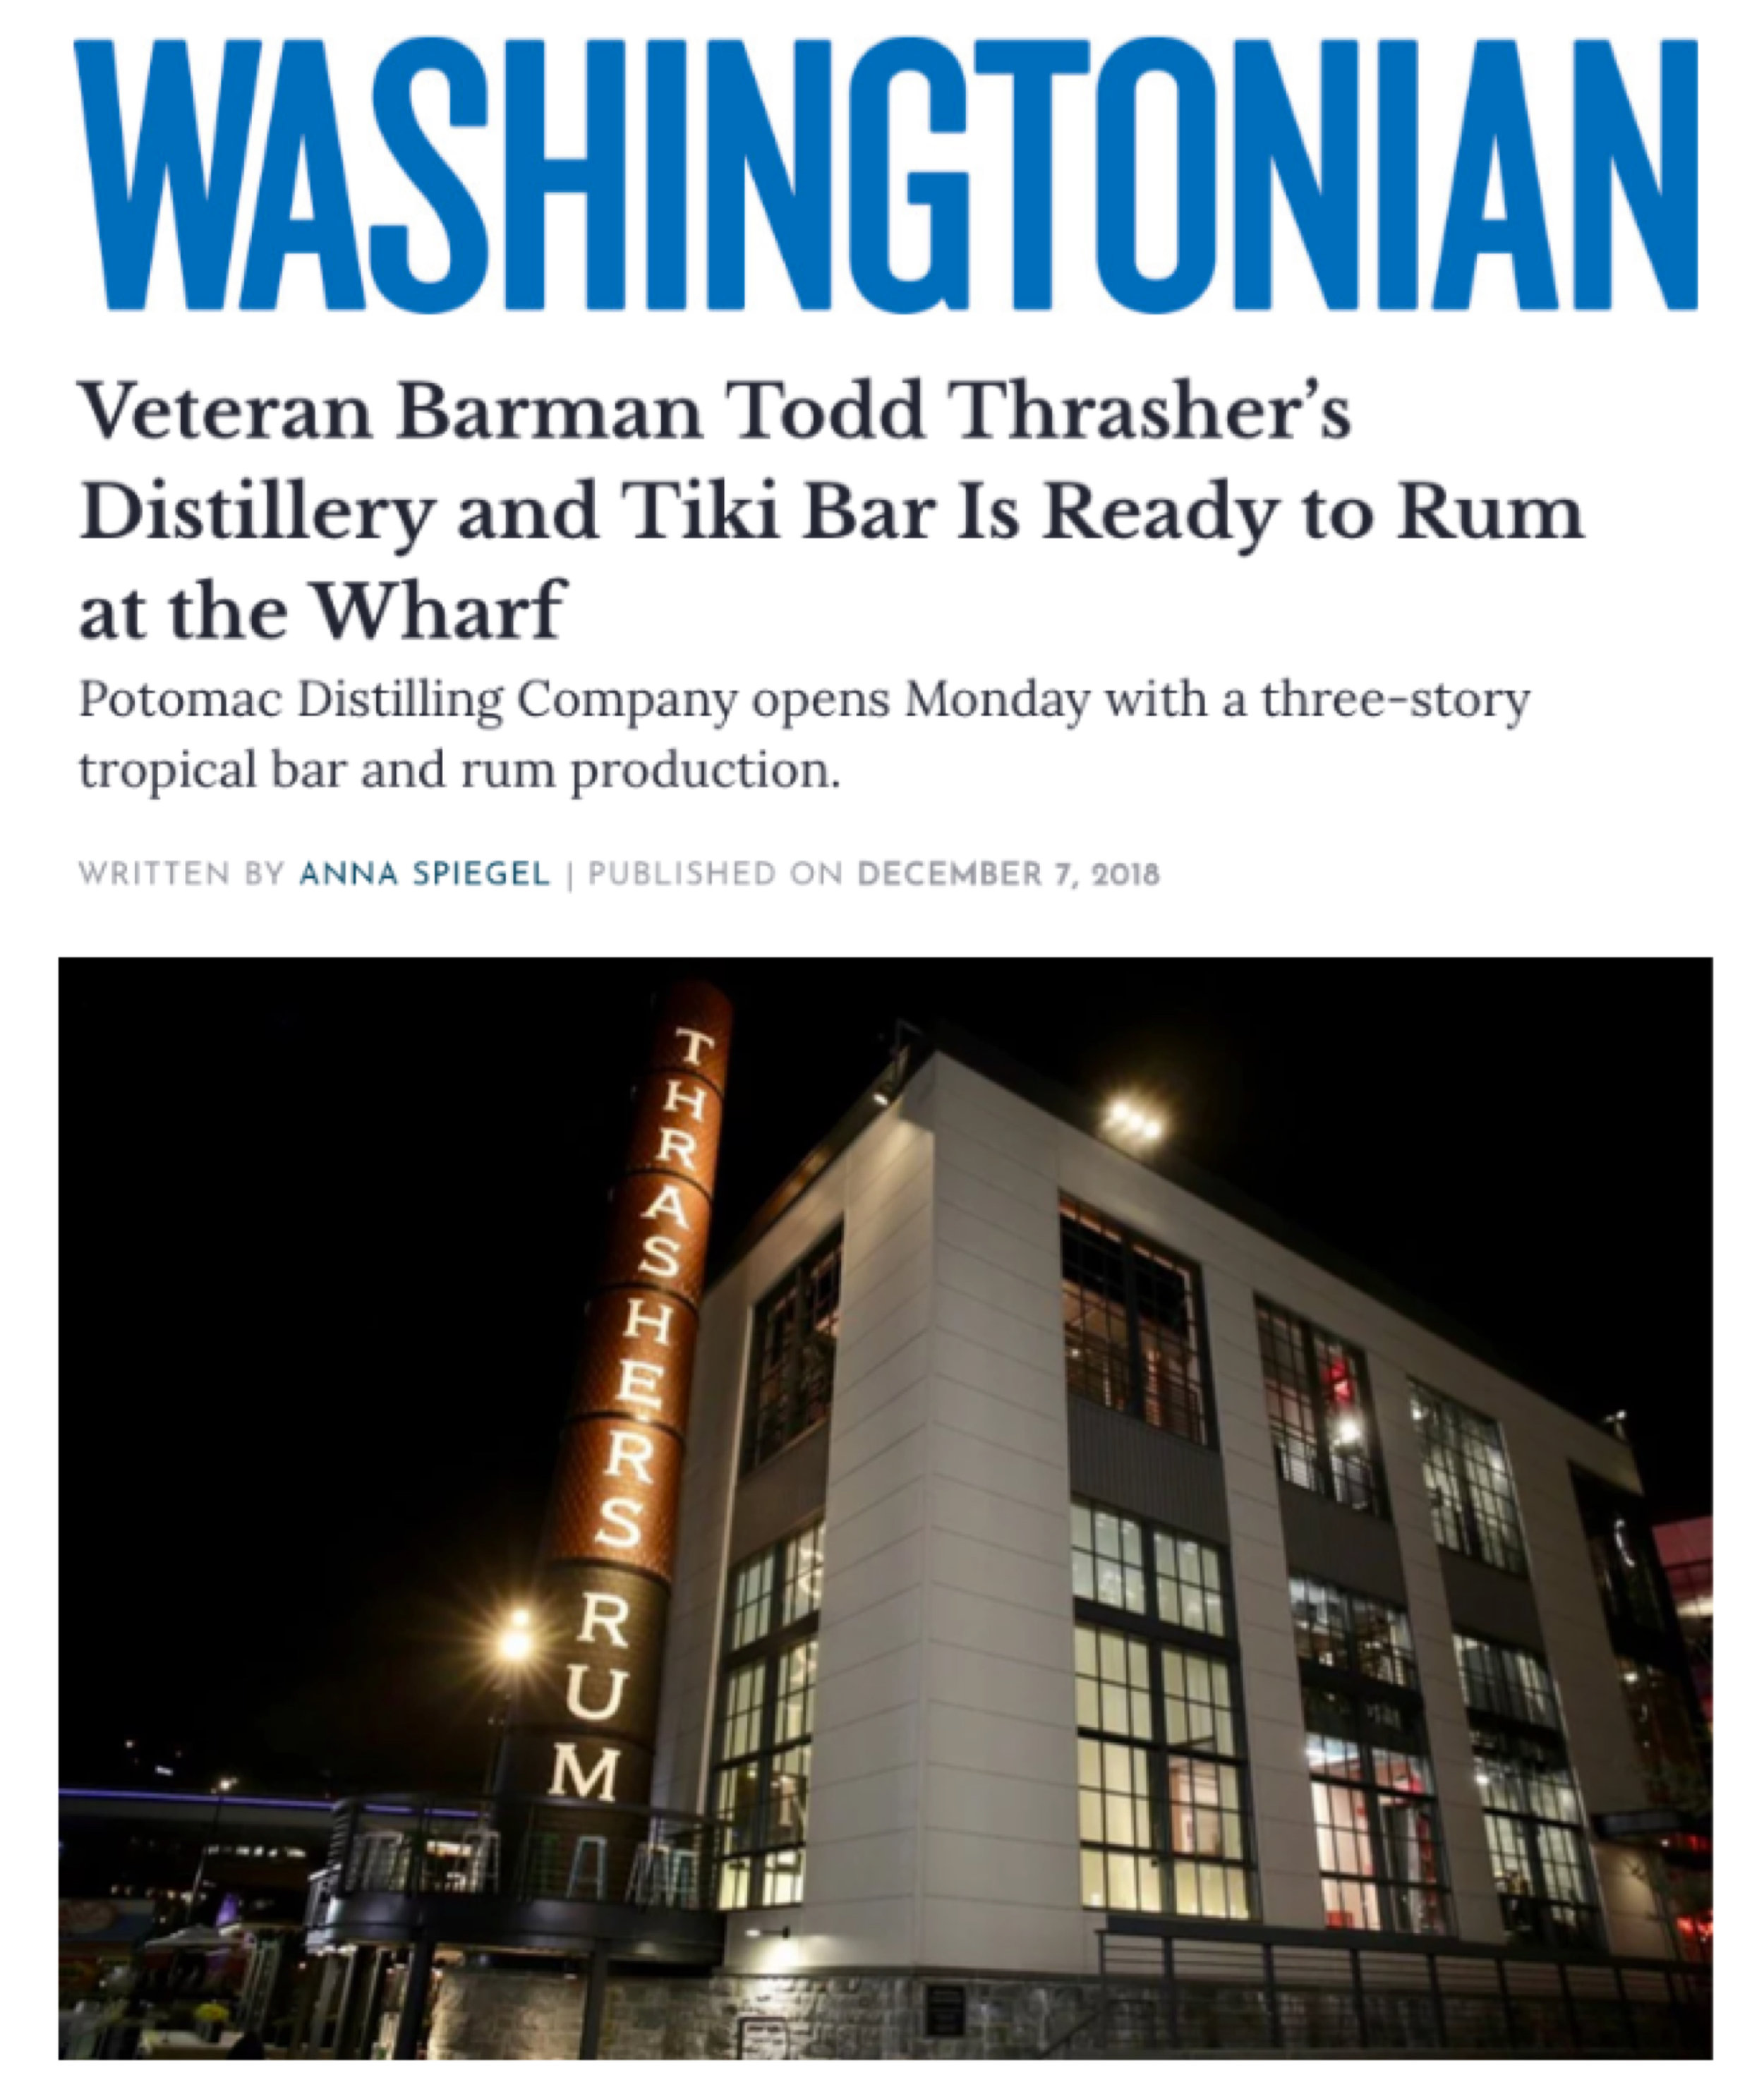 Washingtonian_TikiTNT.001.jpeg